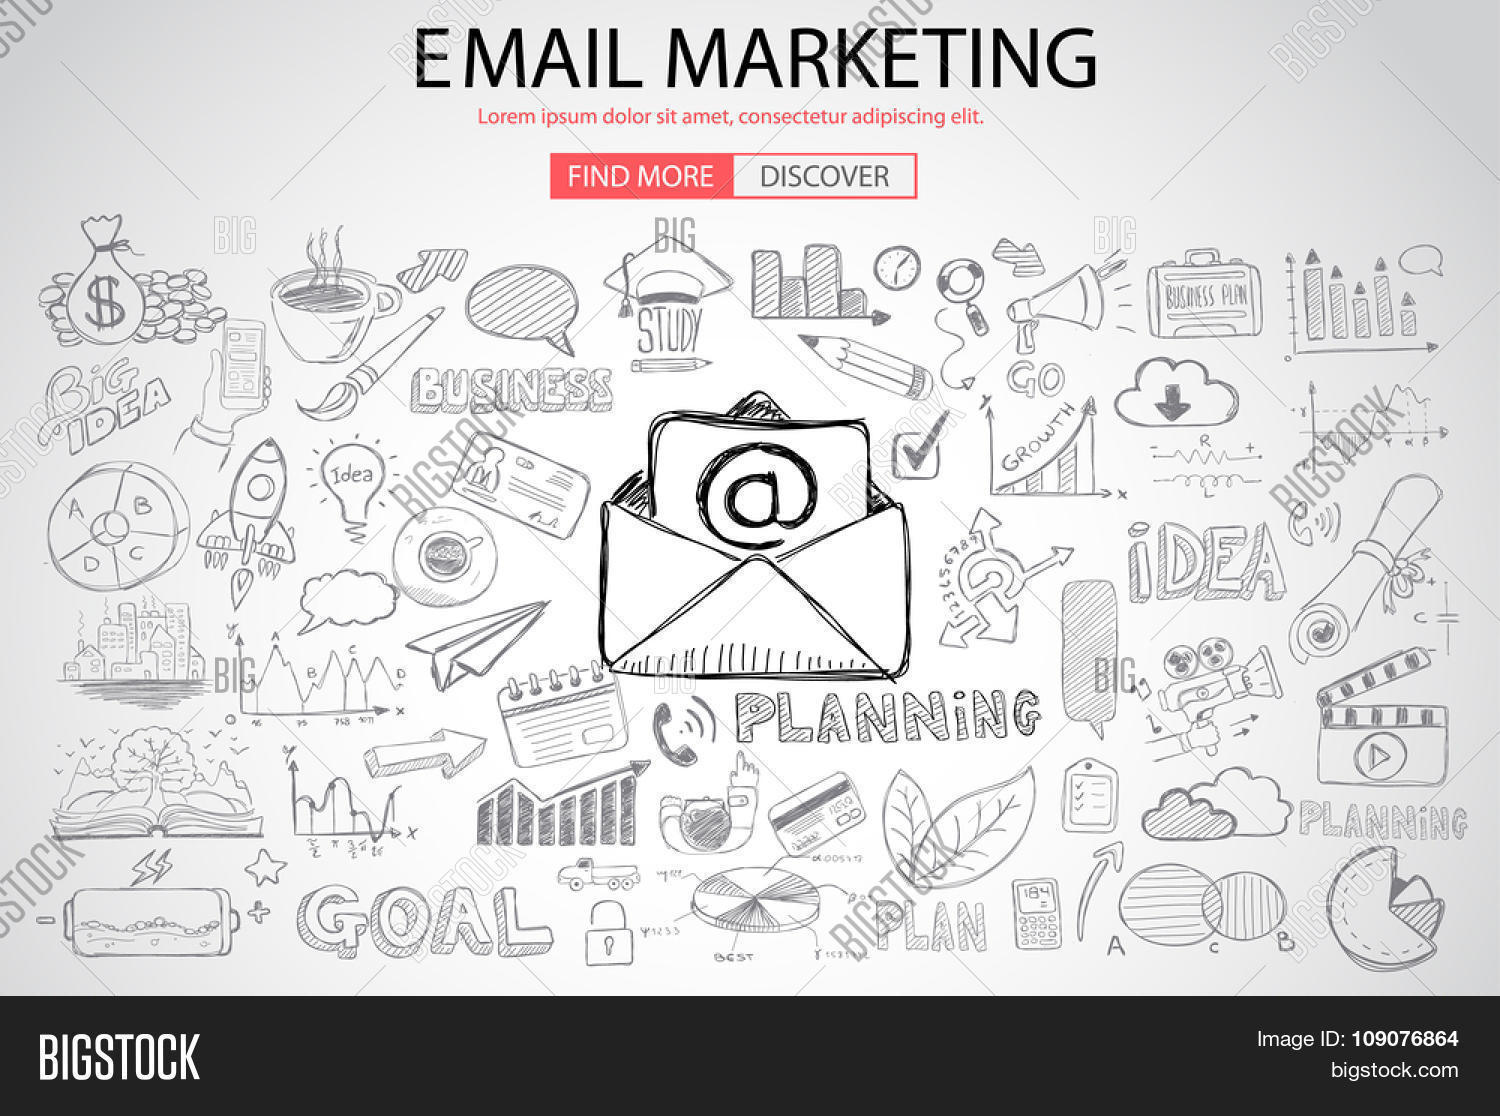 Email Marketing With Doodle Design Style Sending Visual Emails Promotions Creative Designs